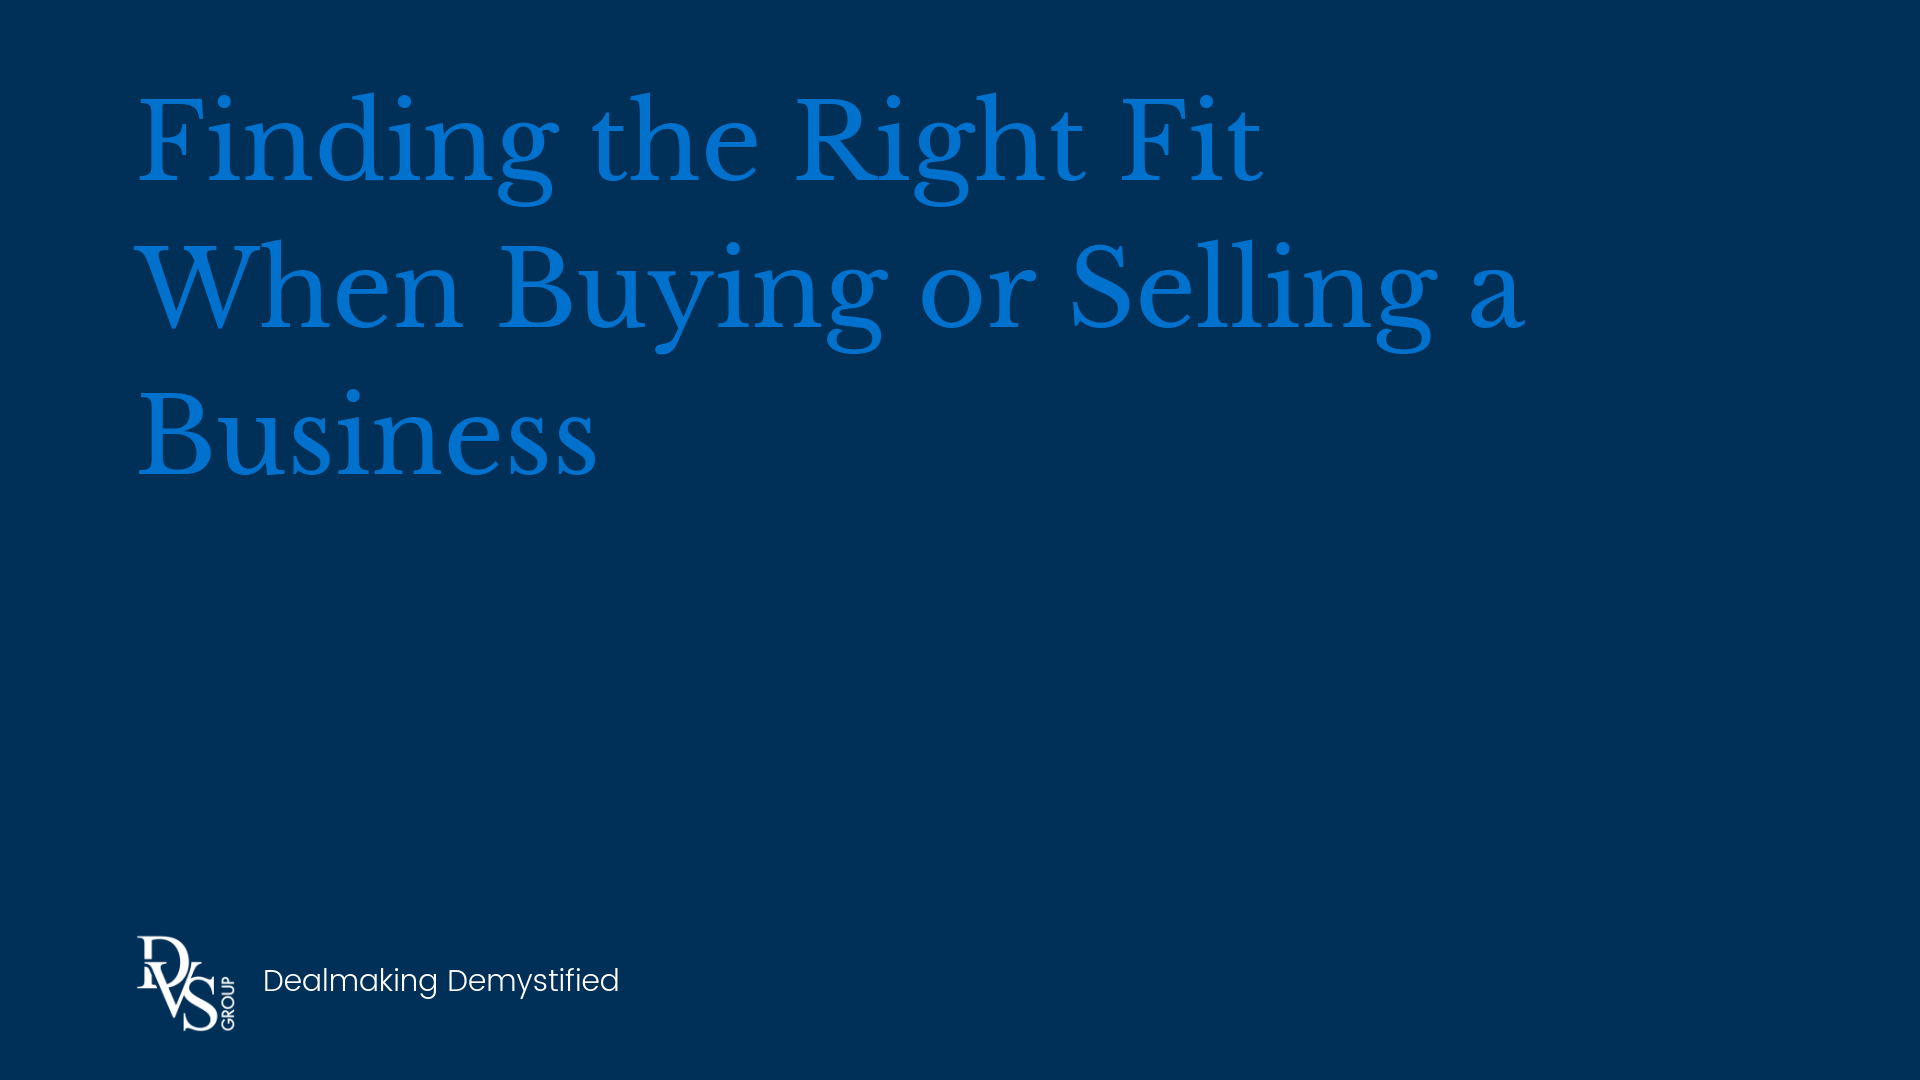 Finding the Right Fit When Buying or Selling a Business